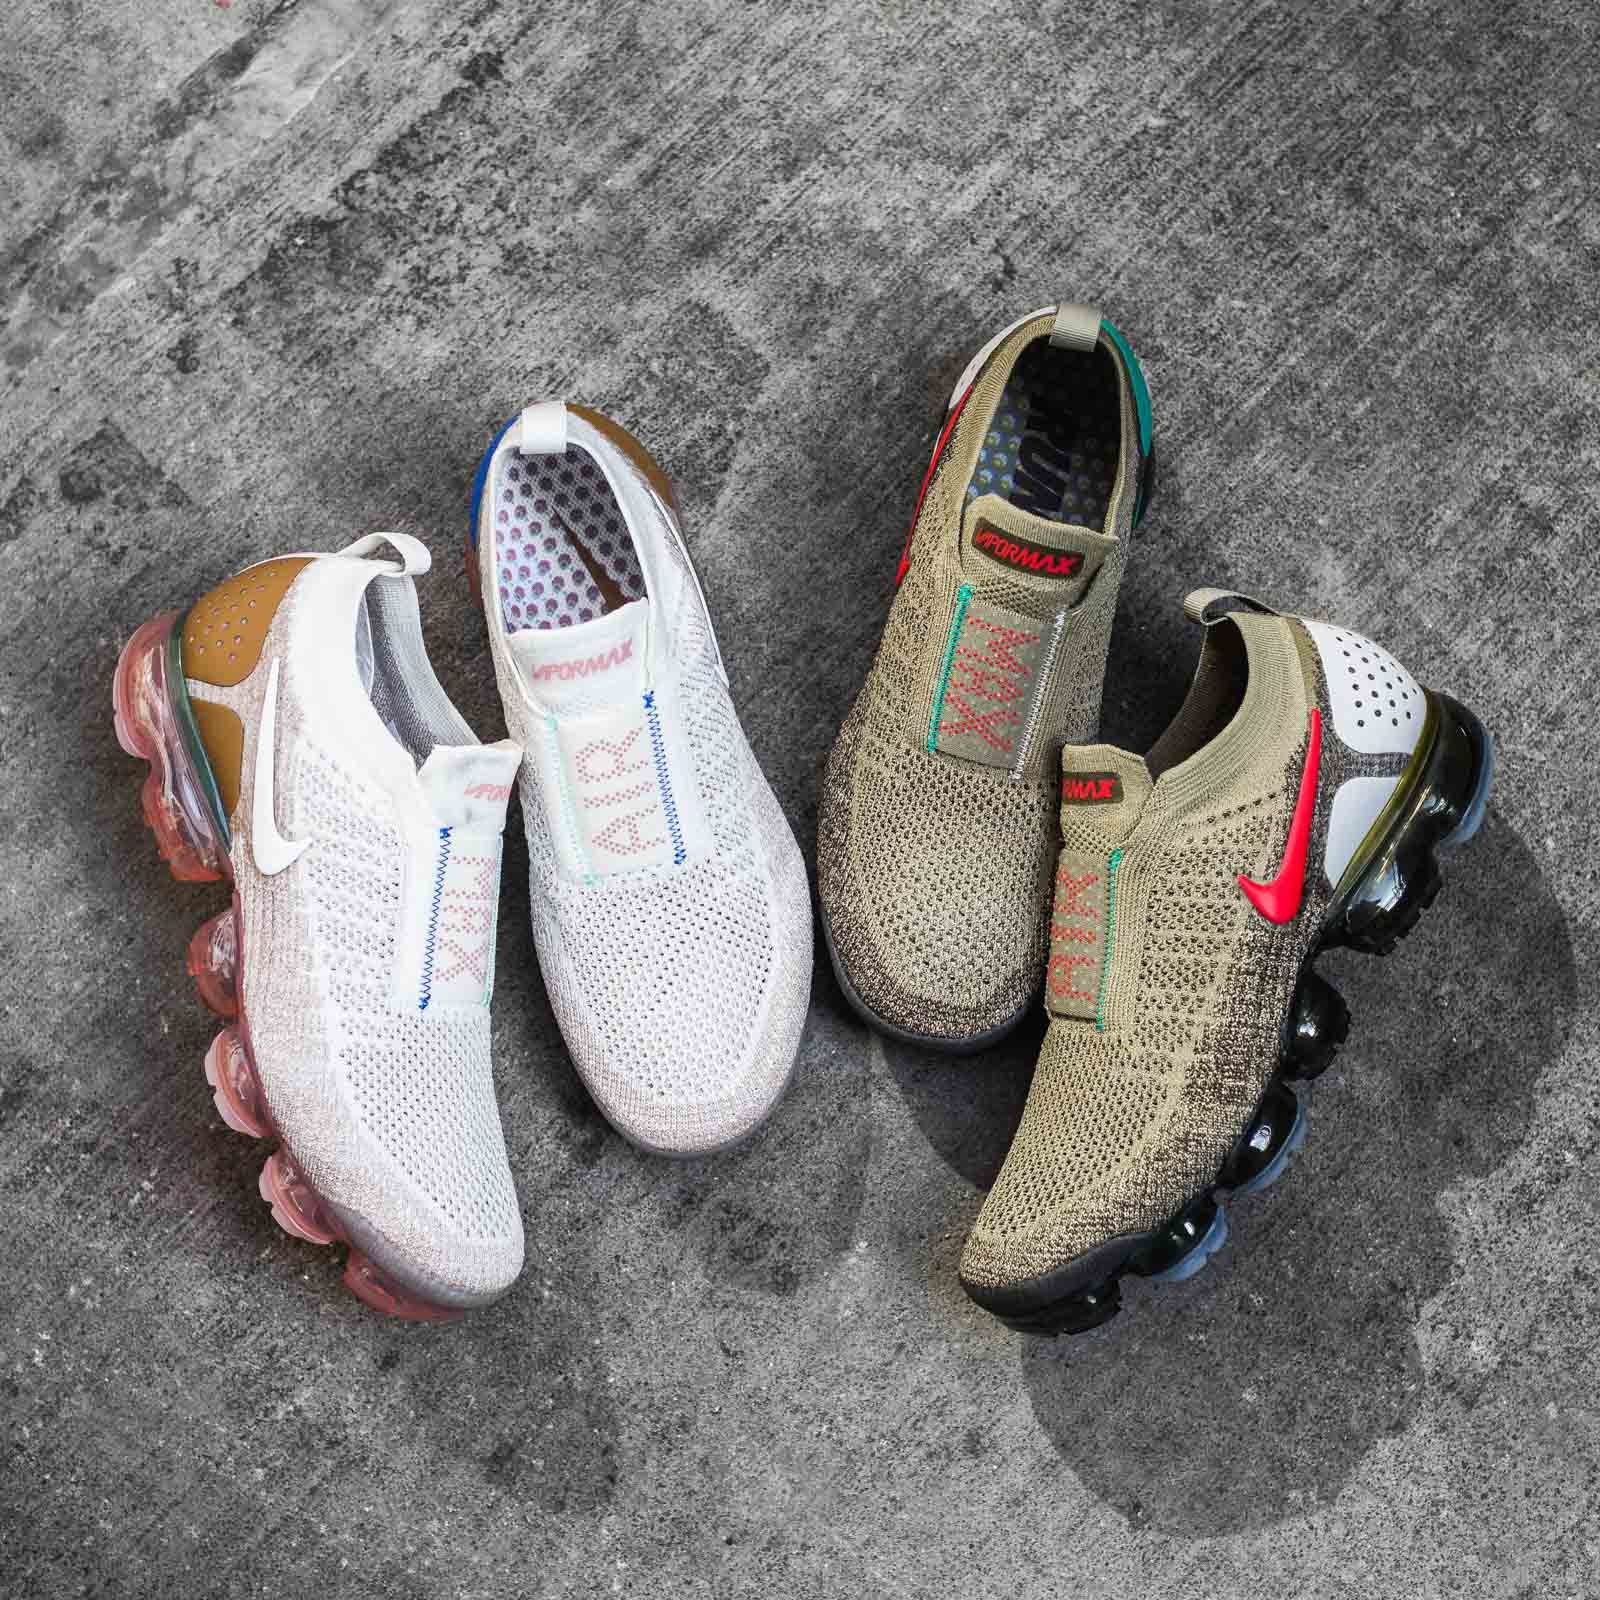 b7c85a50e5e3 Nike Air Vapormax Moc 2 Collection